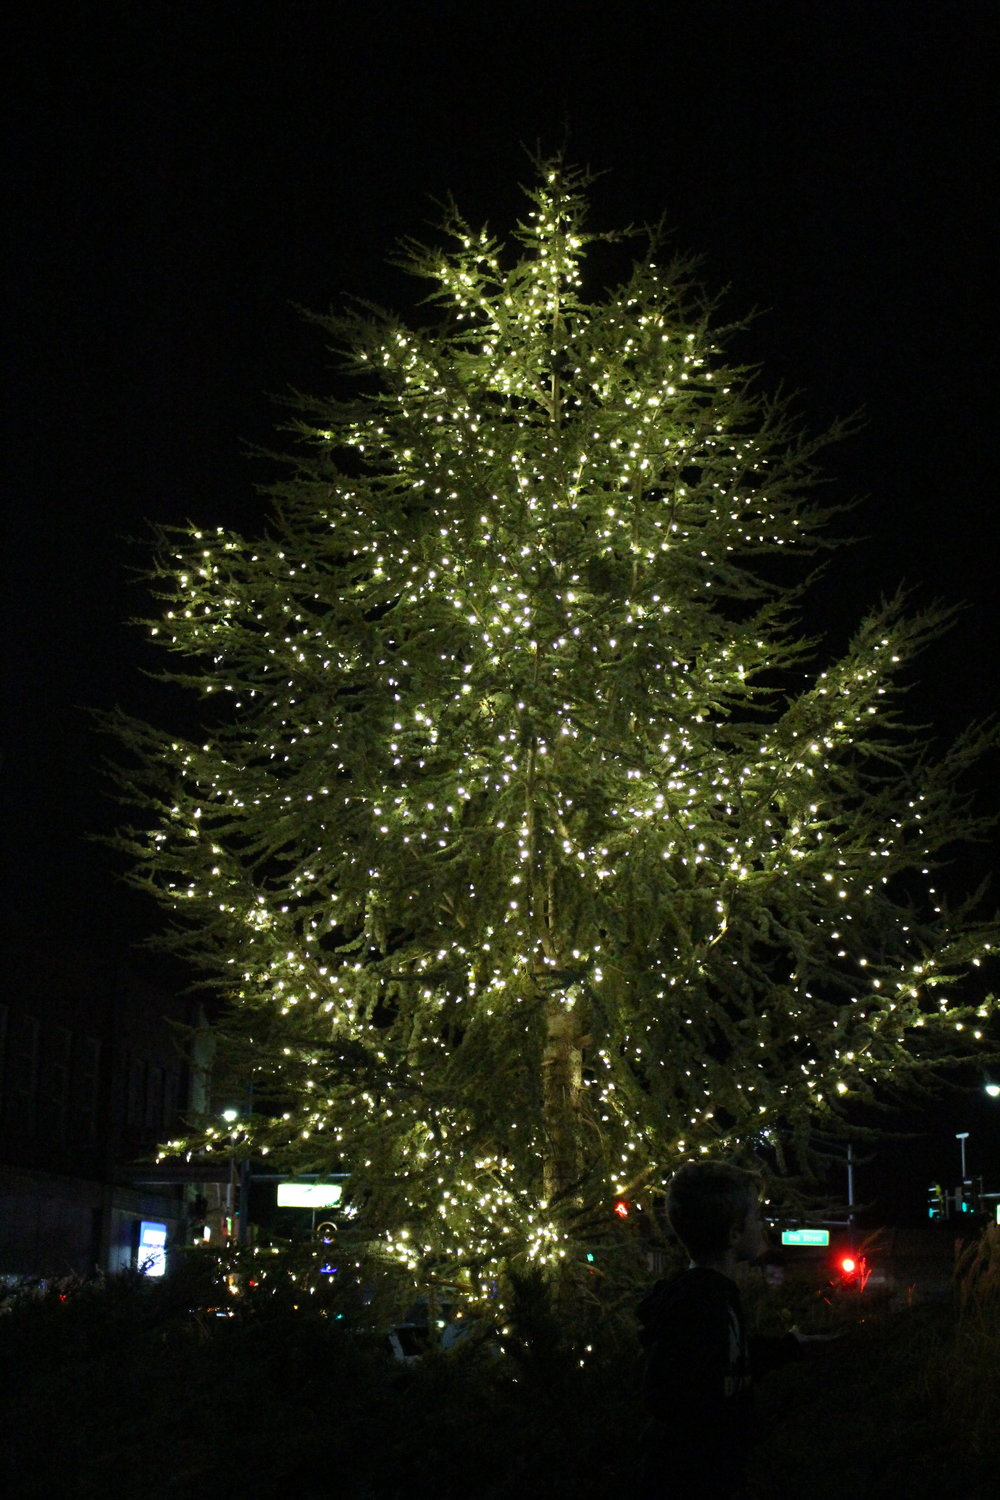 More than 3,000 lights illuminate a tree at the downtown Triangle for the Inaugural Christmas Tree Lighting ceremony. (Photo: Scott Emigh).